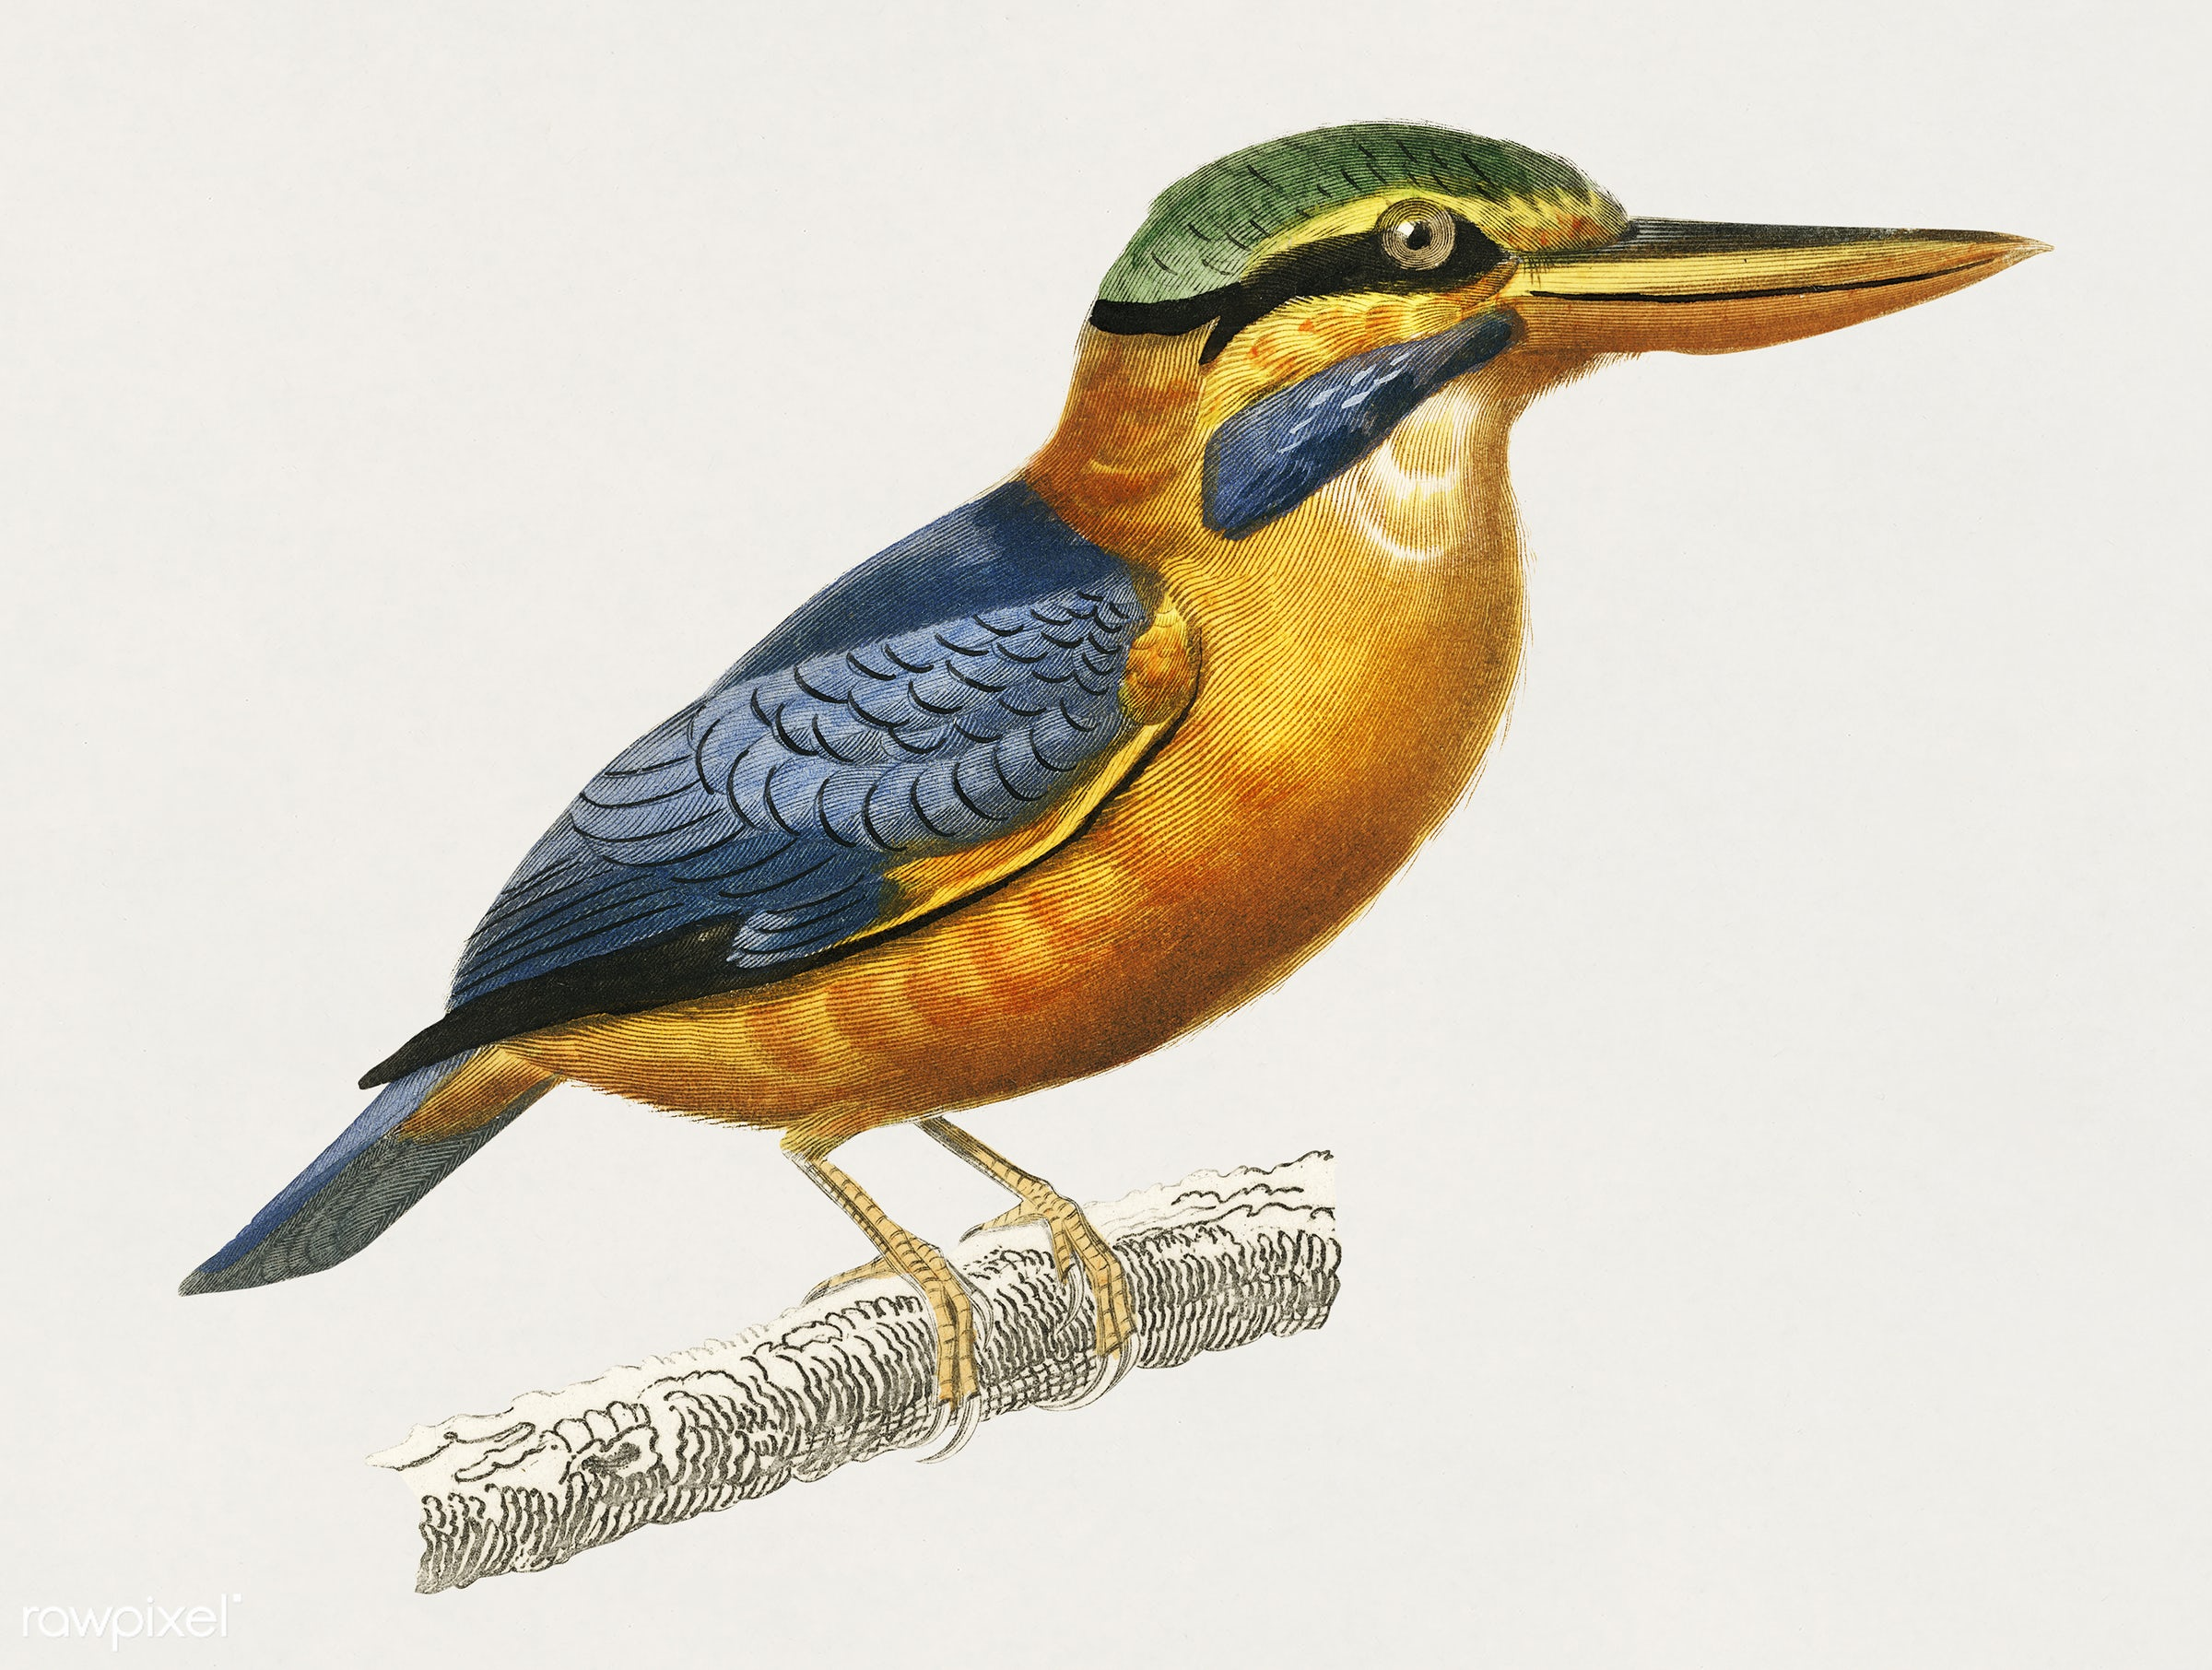 Rufous-collared kingfisher (Martin chasseur trapu) illustrated by Charles Dessalines D' Orbigny (1806-1876). Digitally...